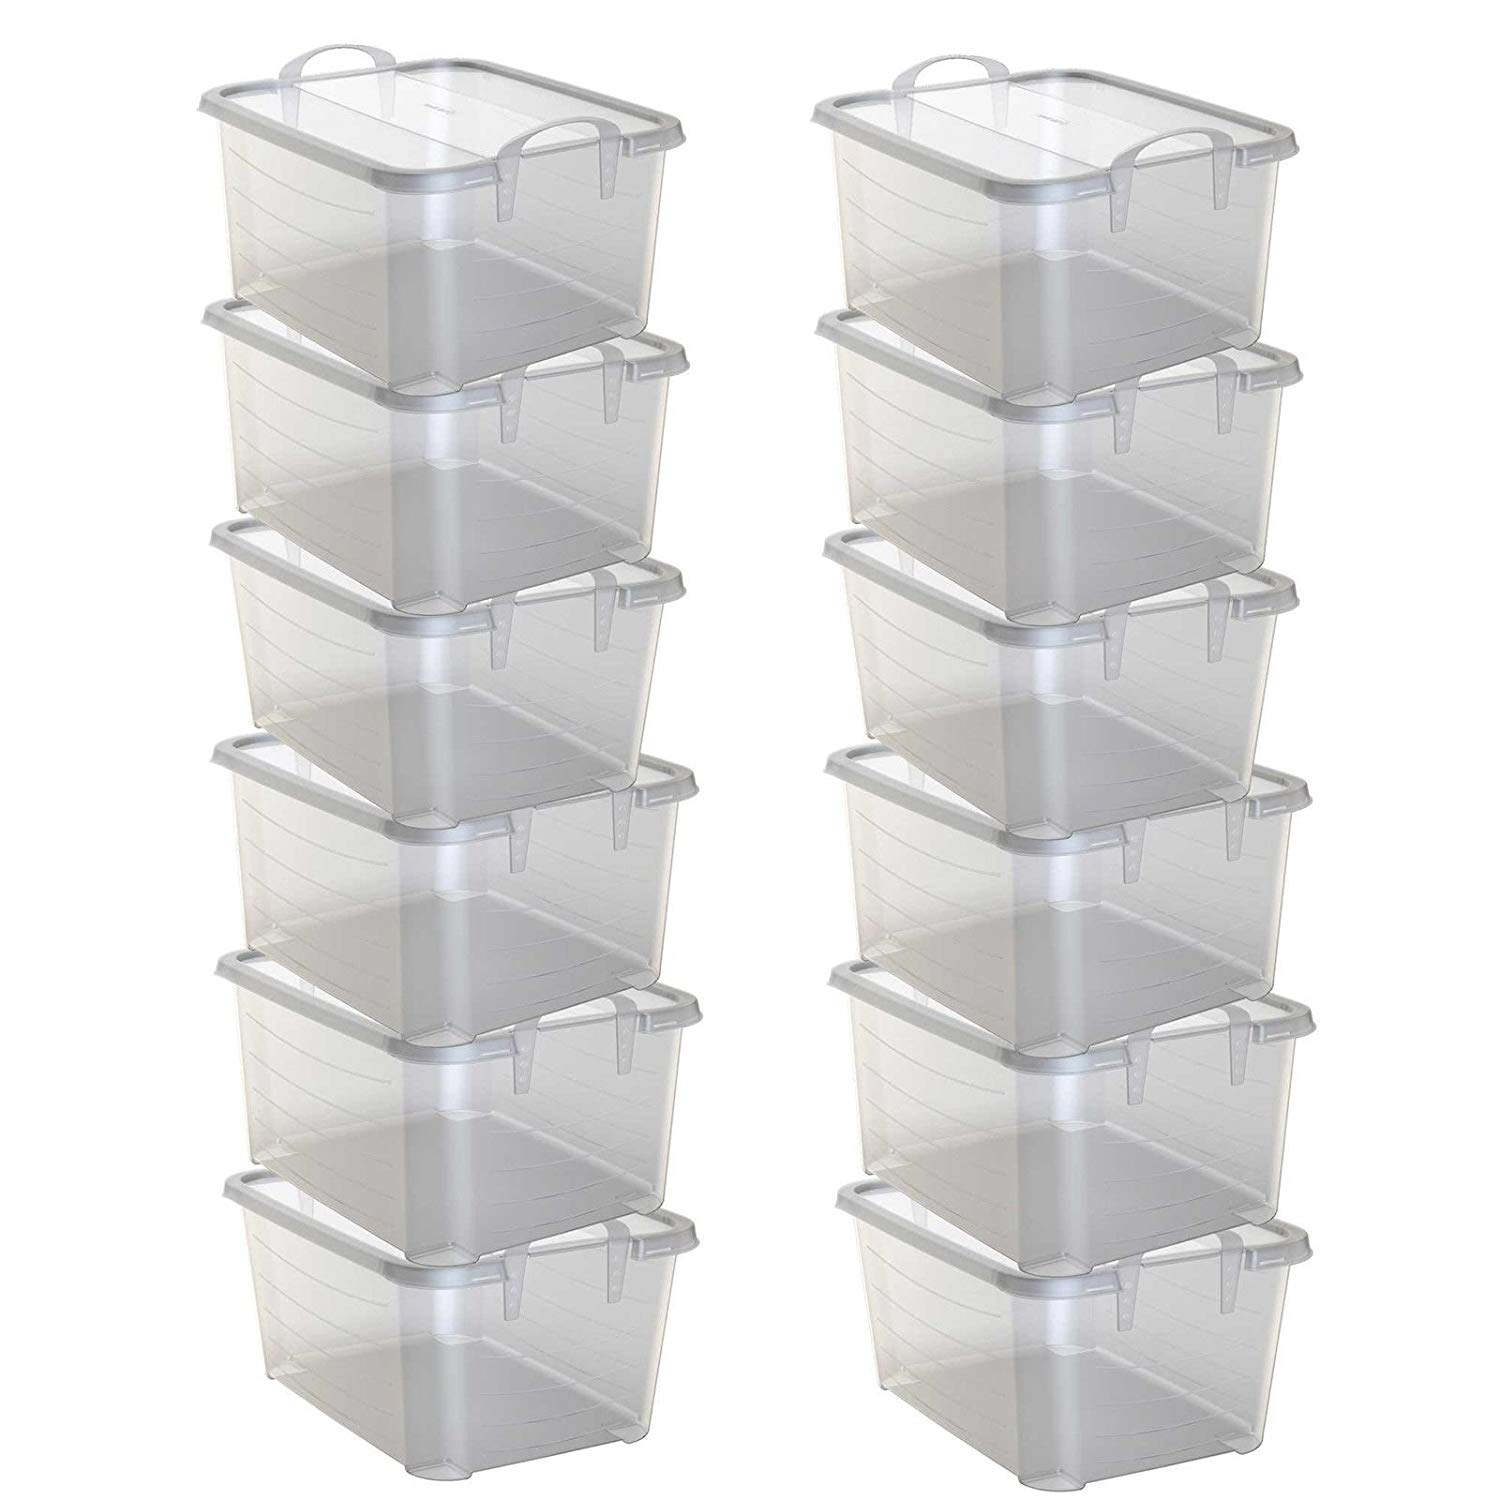 Storage Containers Bins Cubes Clear Plastic Stackable Closet Box 55 Quart  Boxes 12 Pack   Skroutz